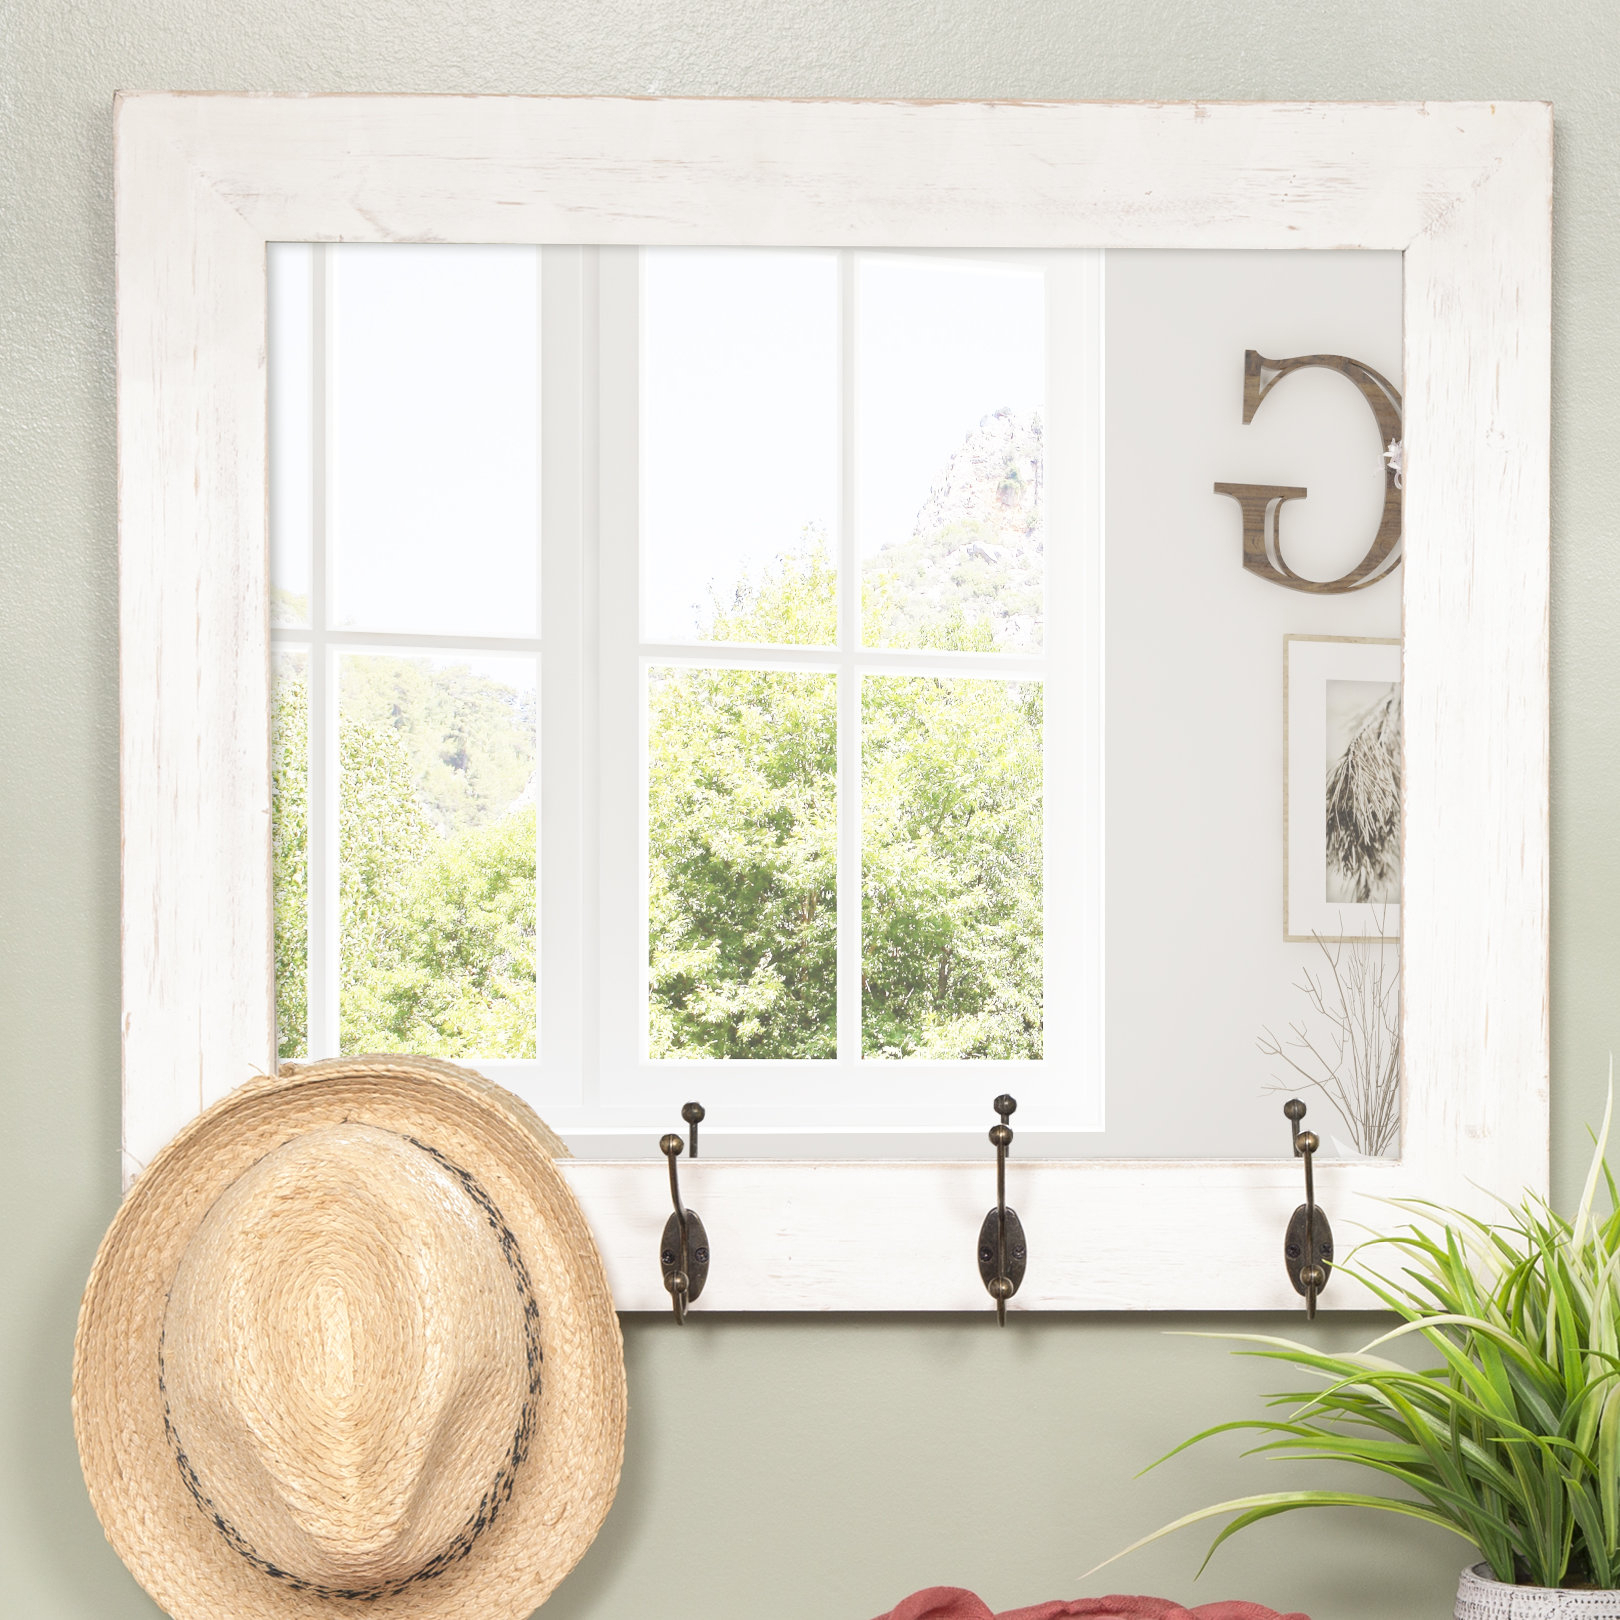 Farmhouse & Rustic Shelves / Drawers Wall & Accent Mirrors Throughout Hallas Wall Organizer Mirrors (Image 6 of 20)